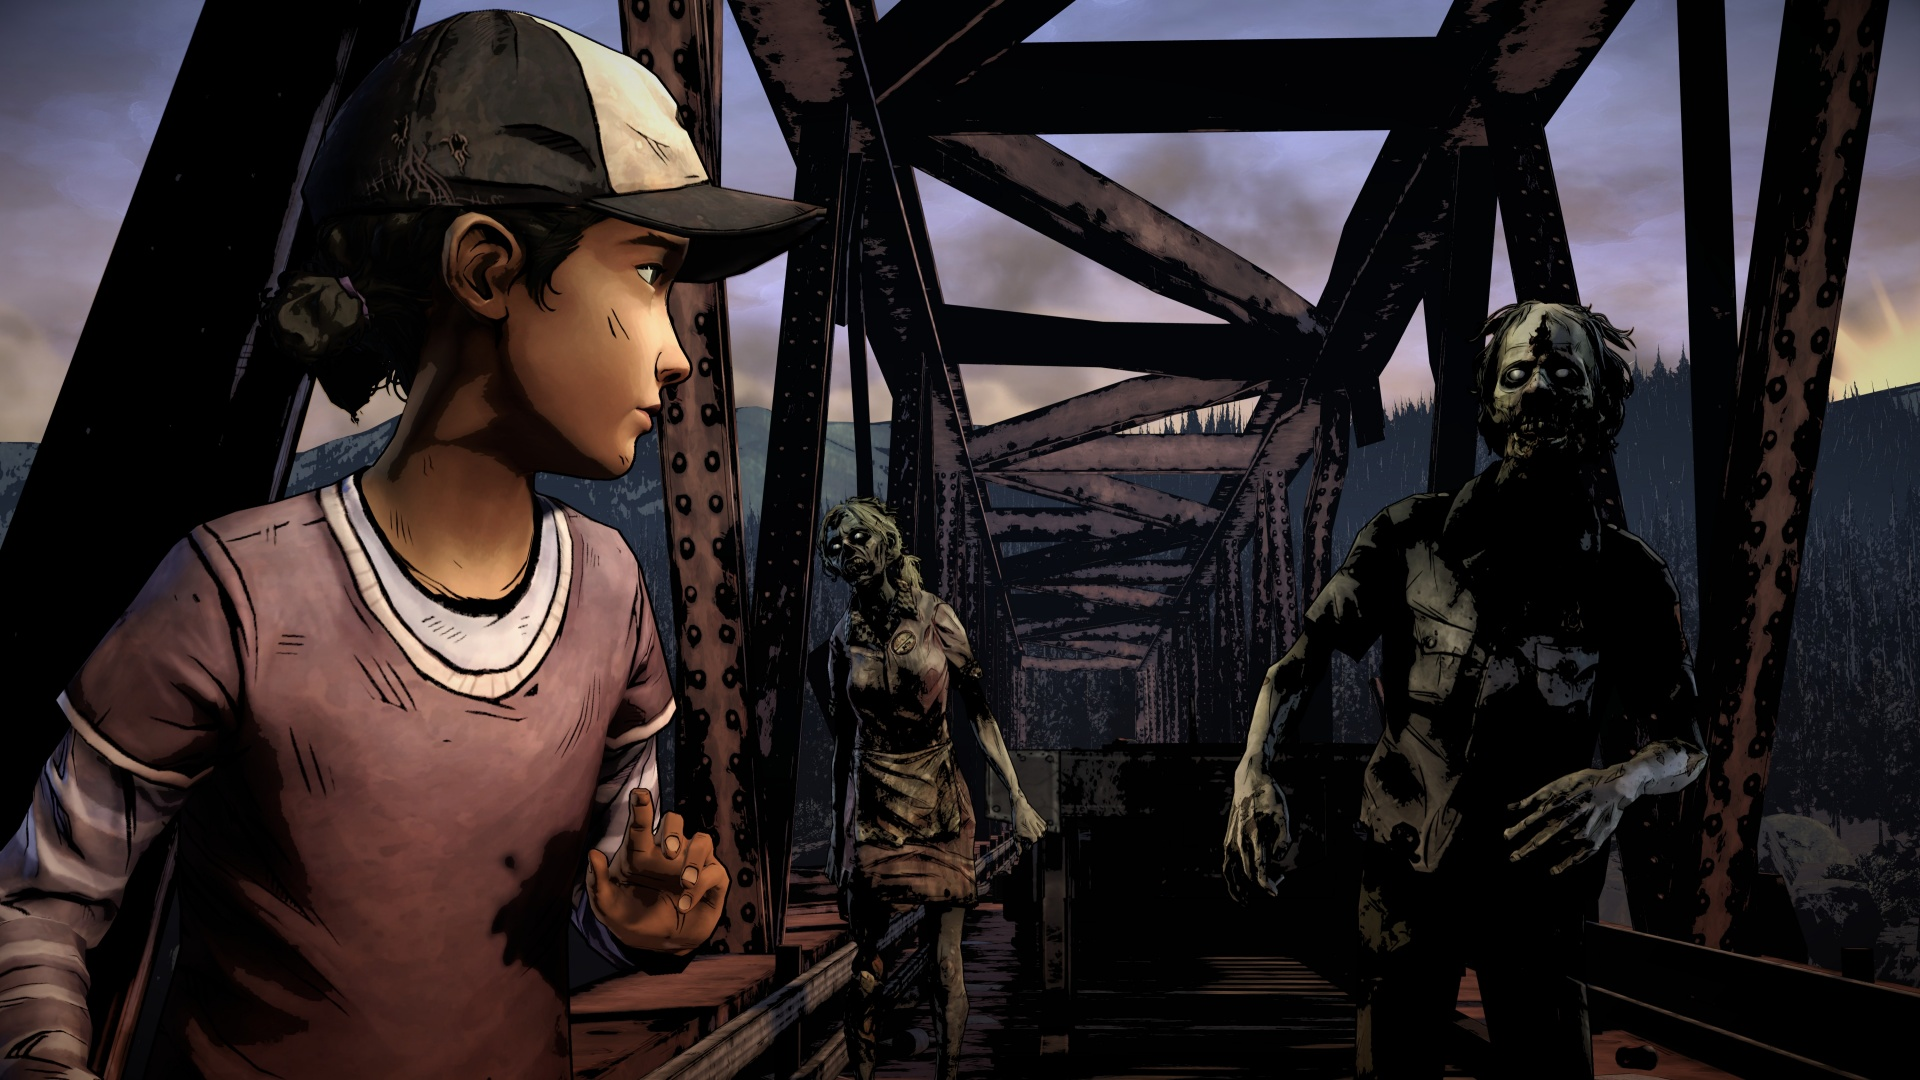 Скриншот к игре The Walking Dead: The Telltale Definitive Series (2019) | License